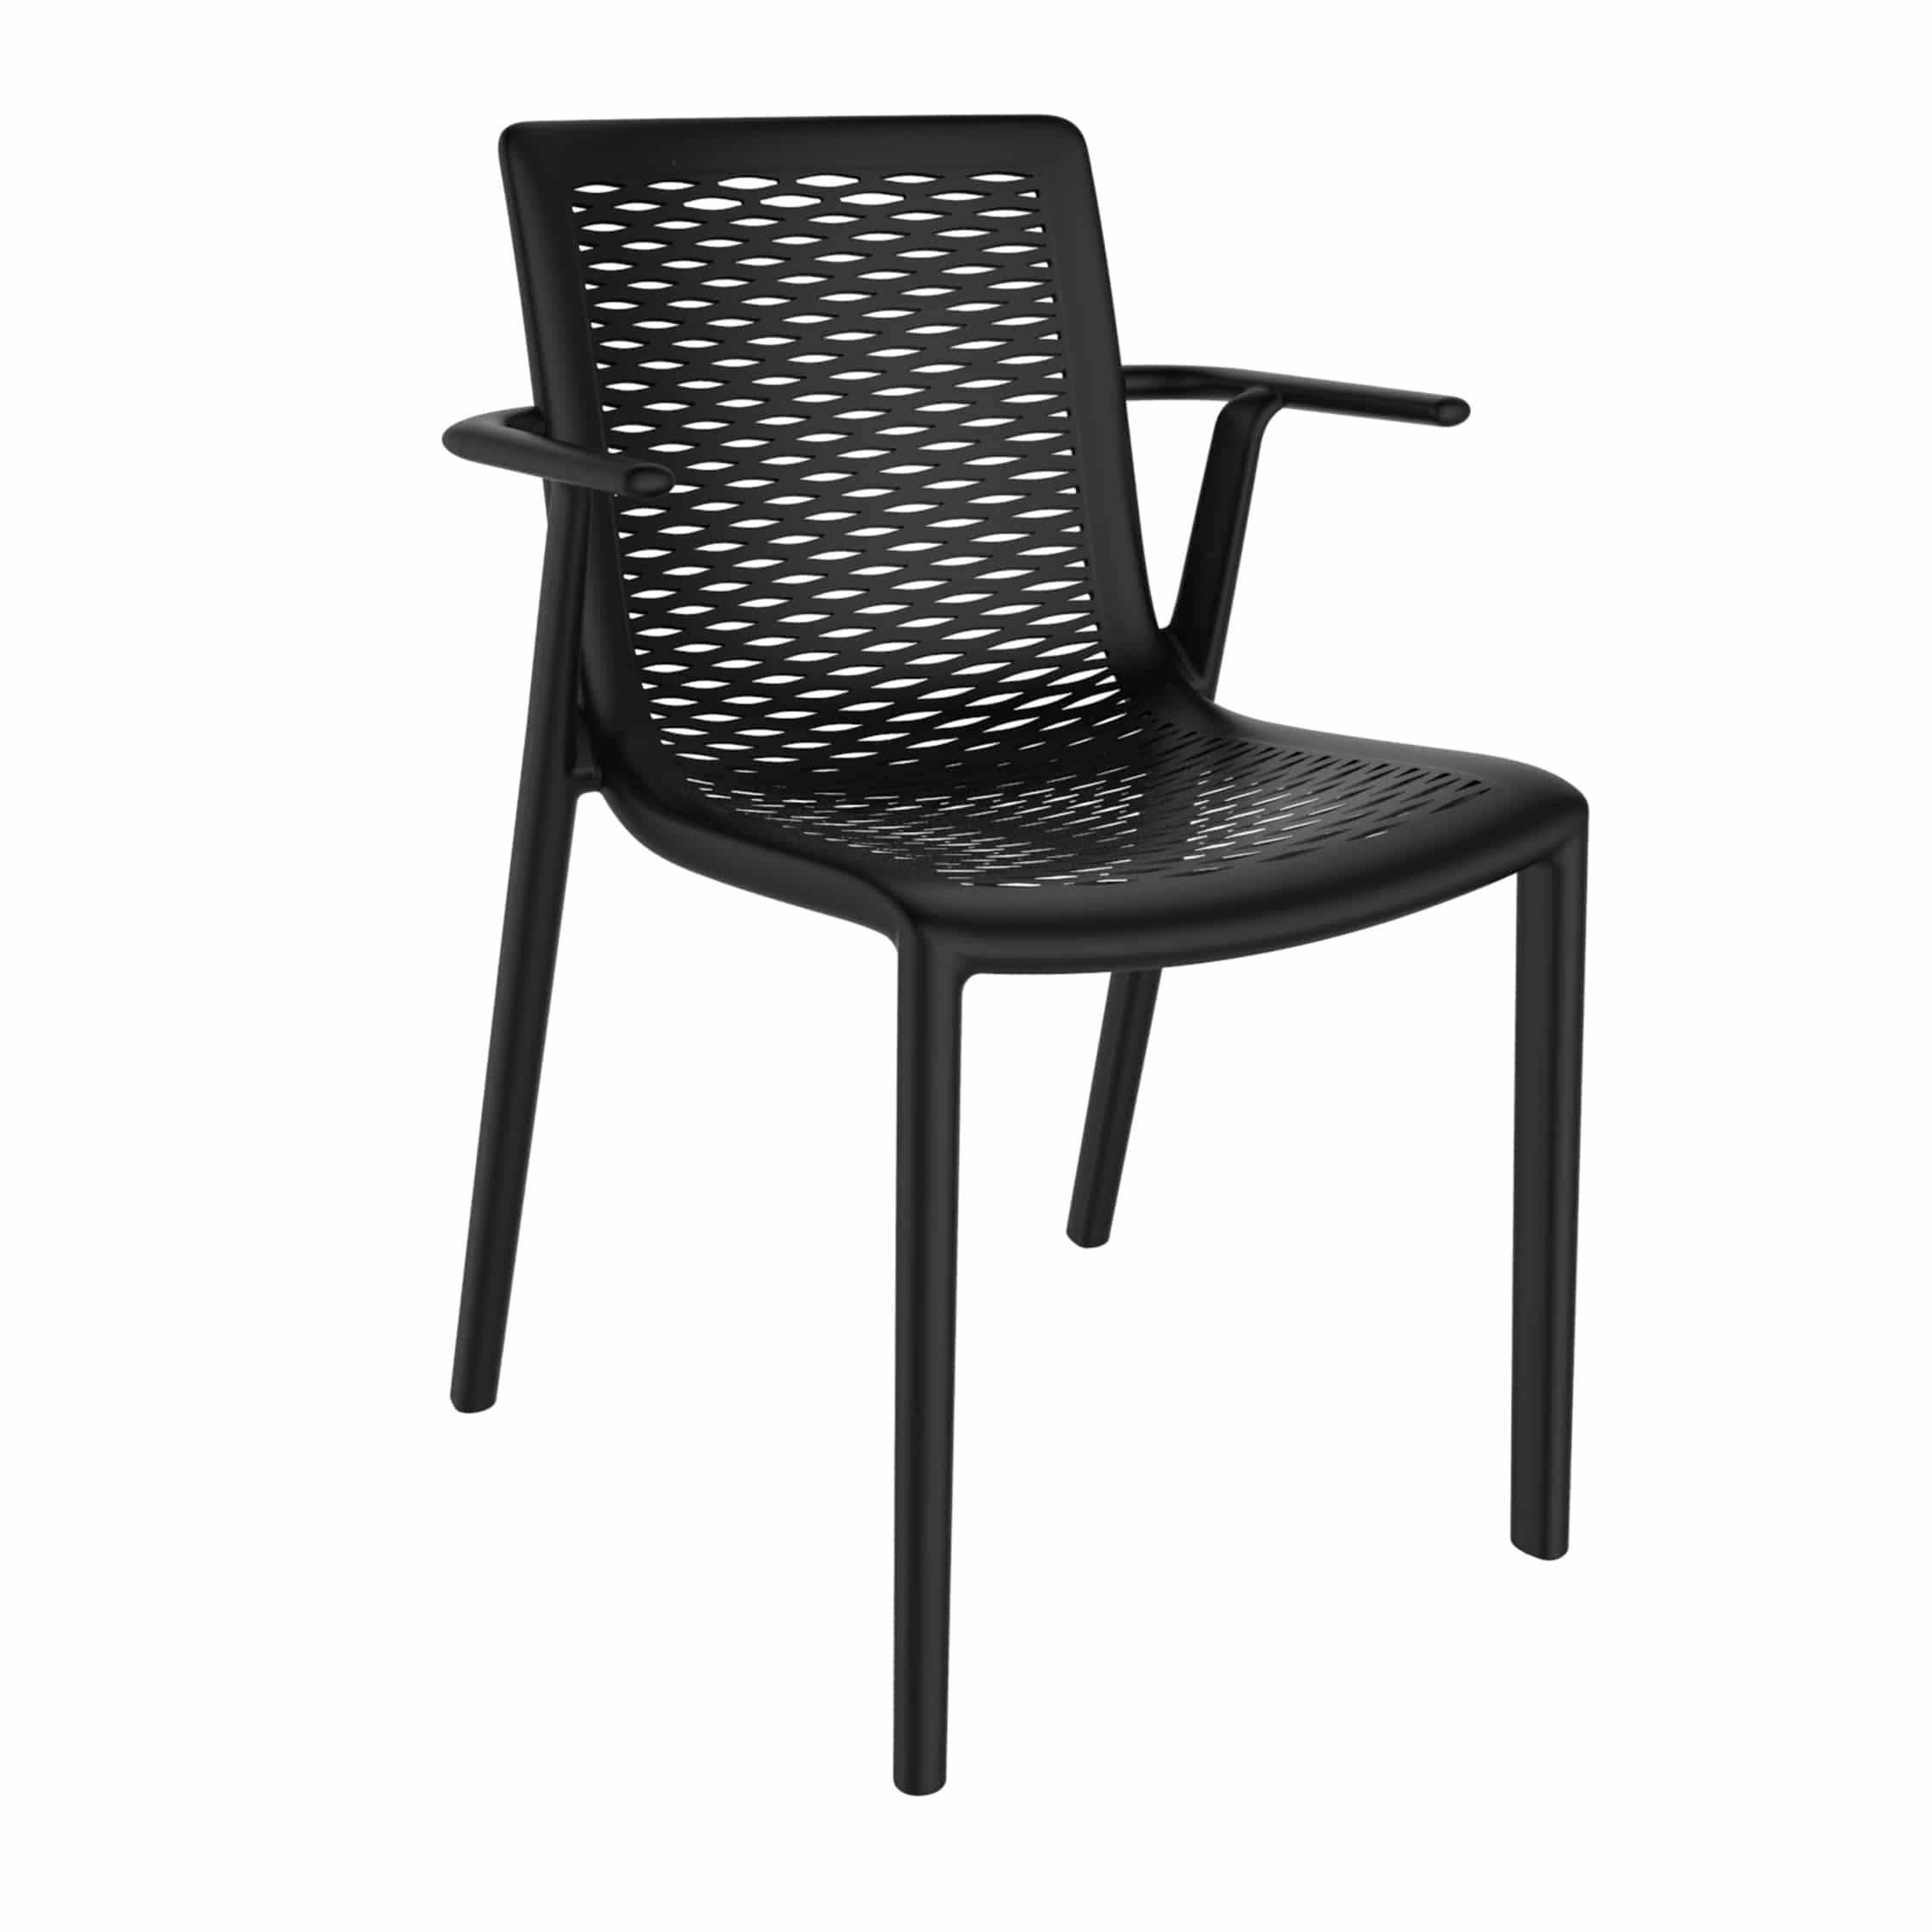 <p>Outdoor Furniture Contemporary Collection – Manteca Chair with arms – Black.</p> <p> </p> <p>Chair specially designed for indoor and outdoor available in a variety of colours, stackable, capturing essential features such as lightness, stability, functionality, ergonomics and care for the environment. Unassuming in design and look</p>